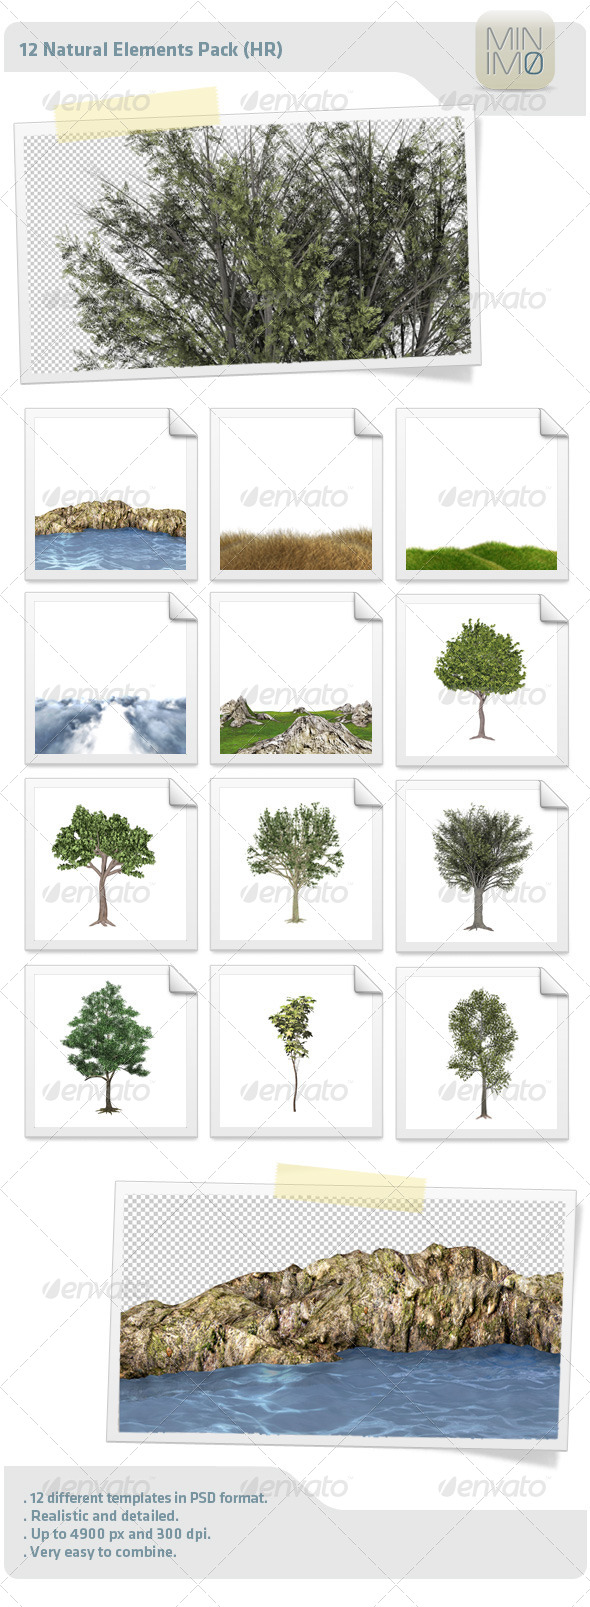 GraphicRiver 12 Natural Elements Pack HR 4514104